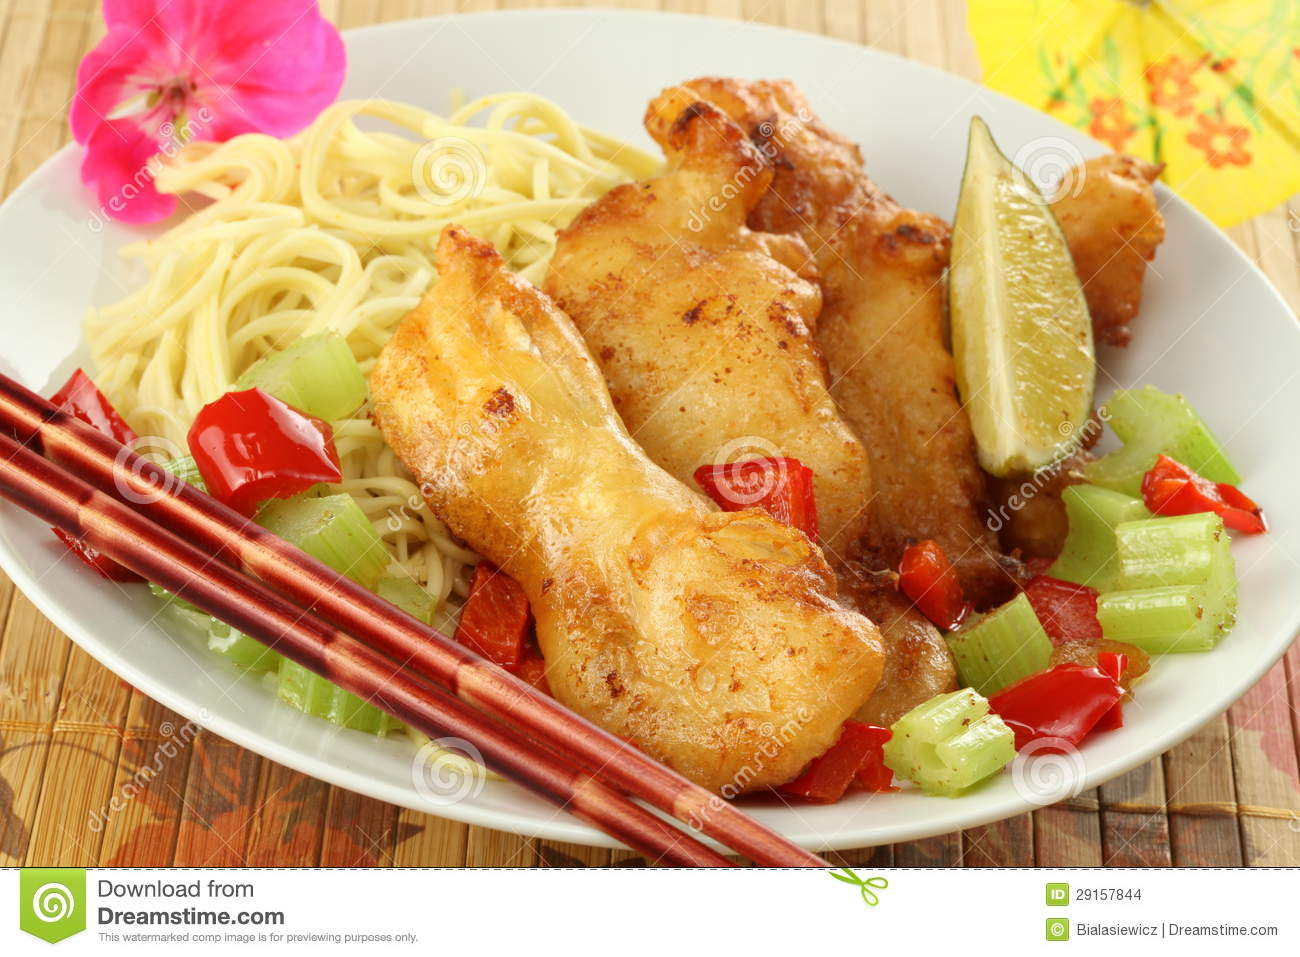 Chinese cuisine stock images image 29157844 for Ajk chinese cuisine